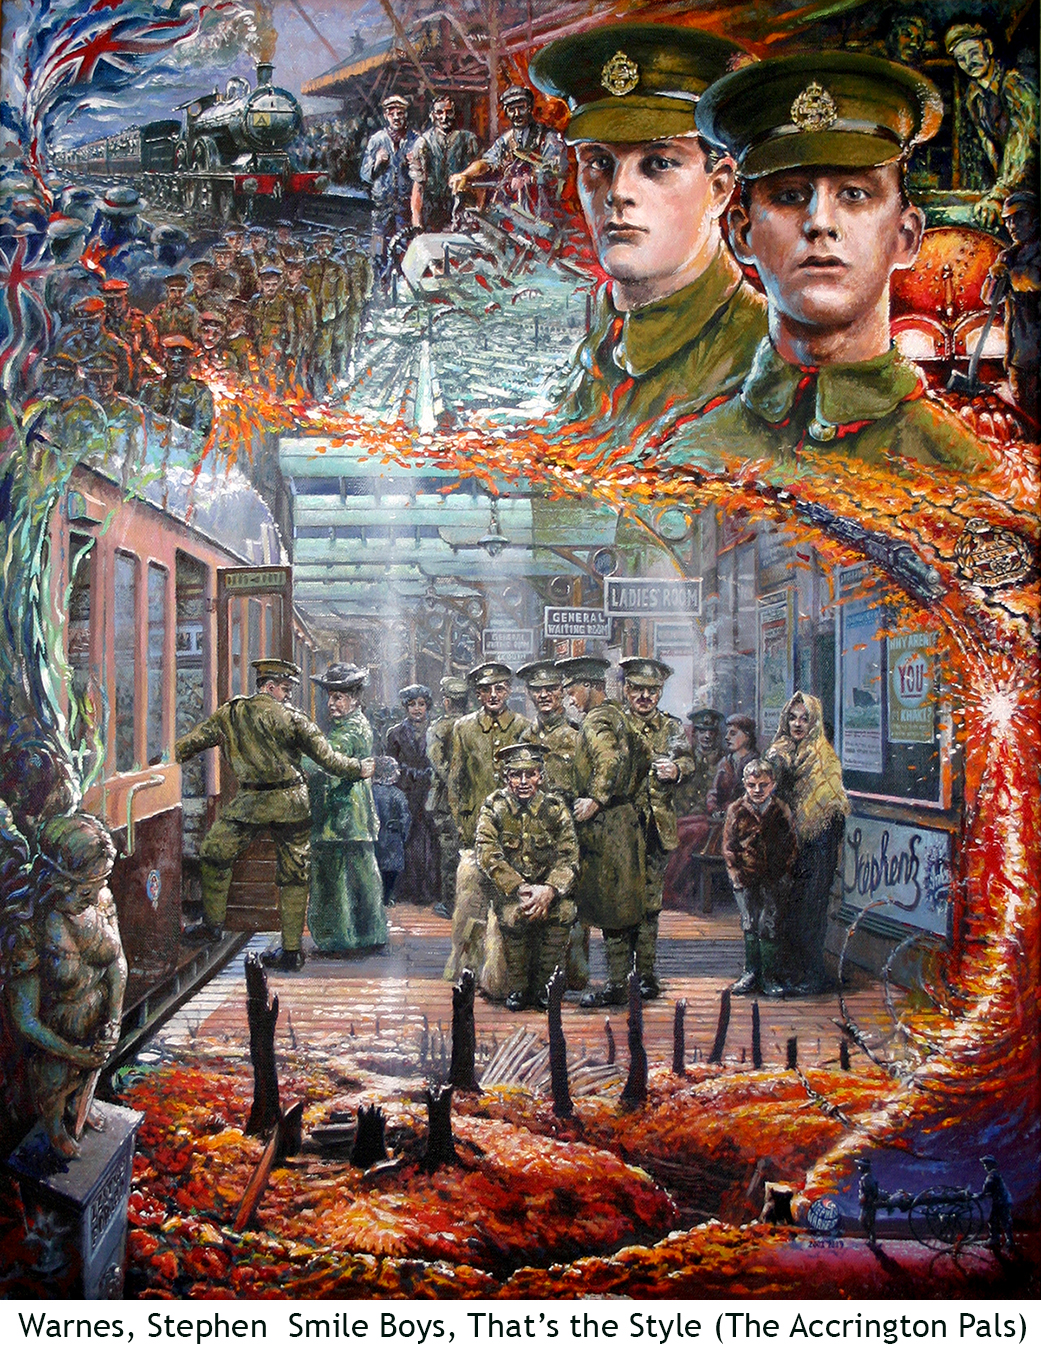 Cumbria's Museum of Military Life's first open art exhibition – Remembrance 100